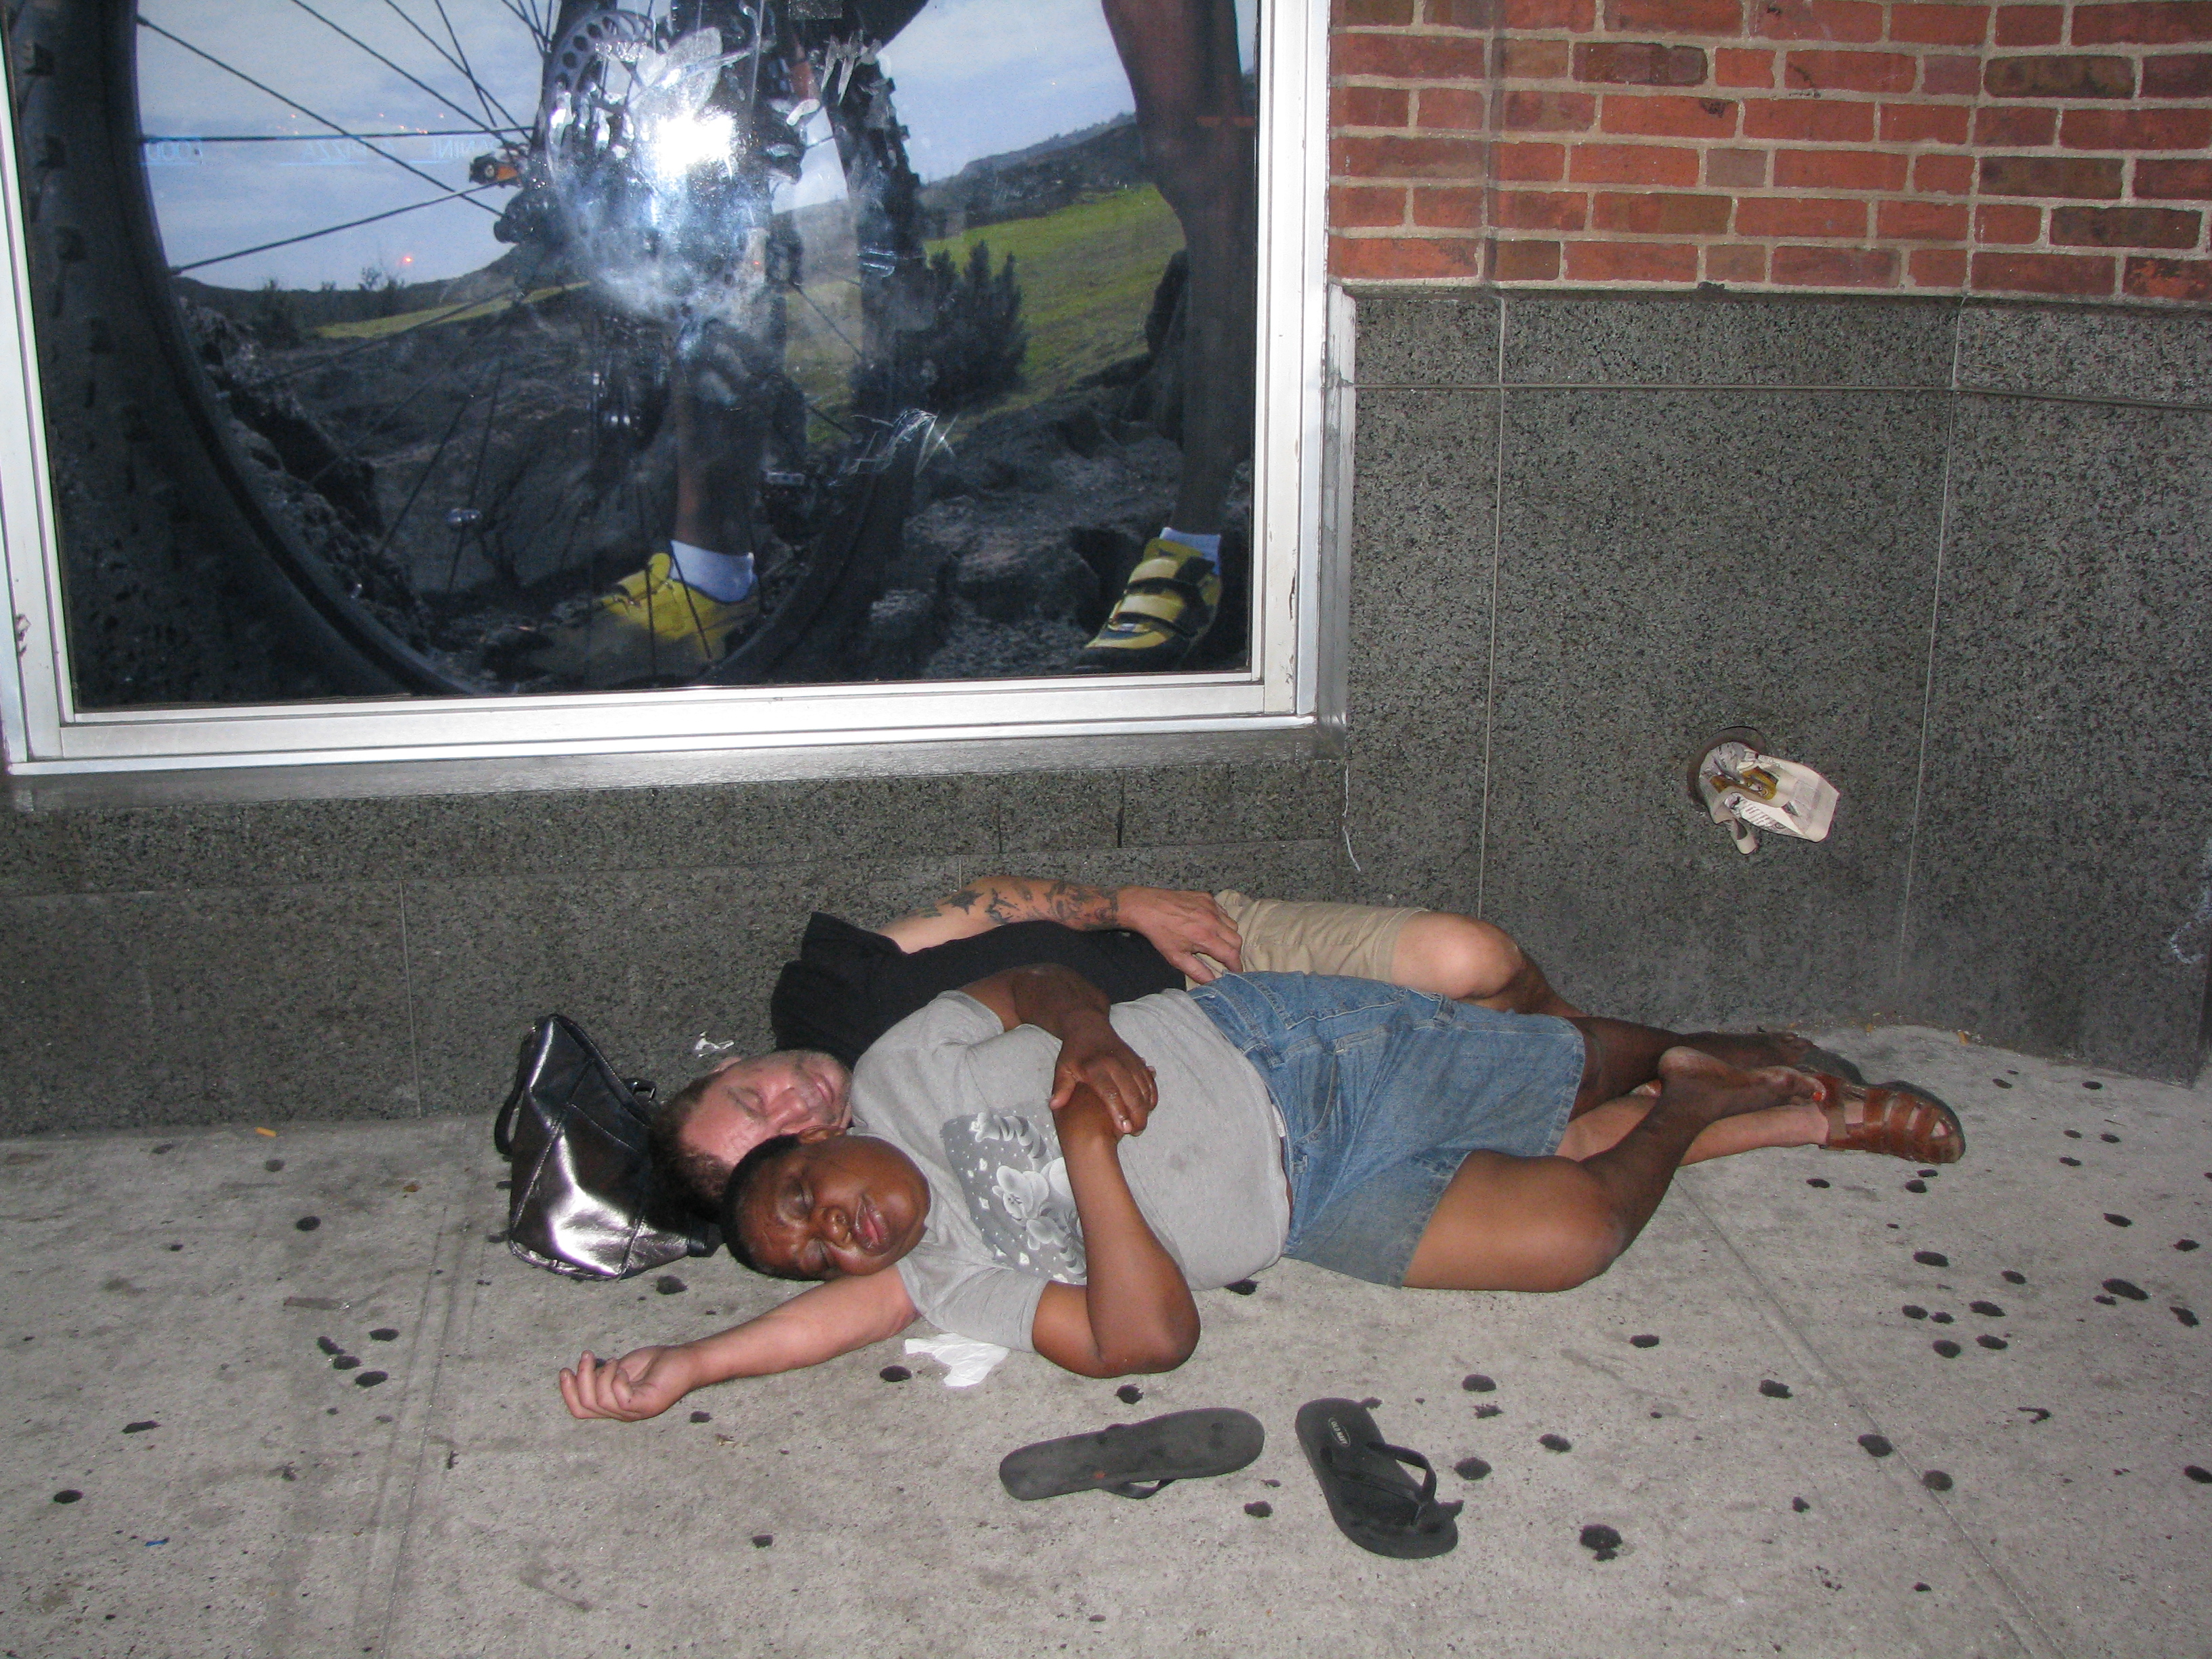 Homeless couple sleeping